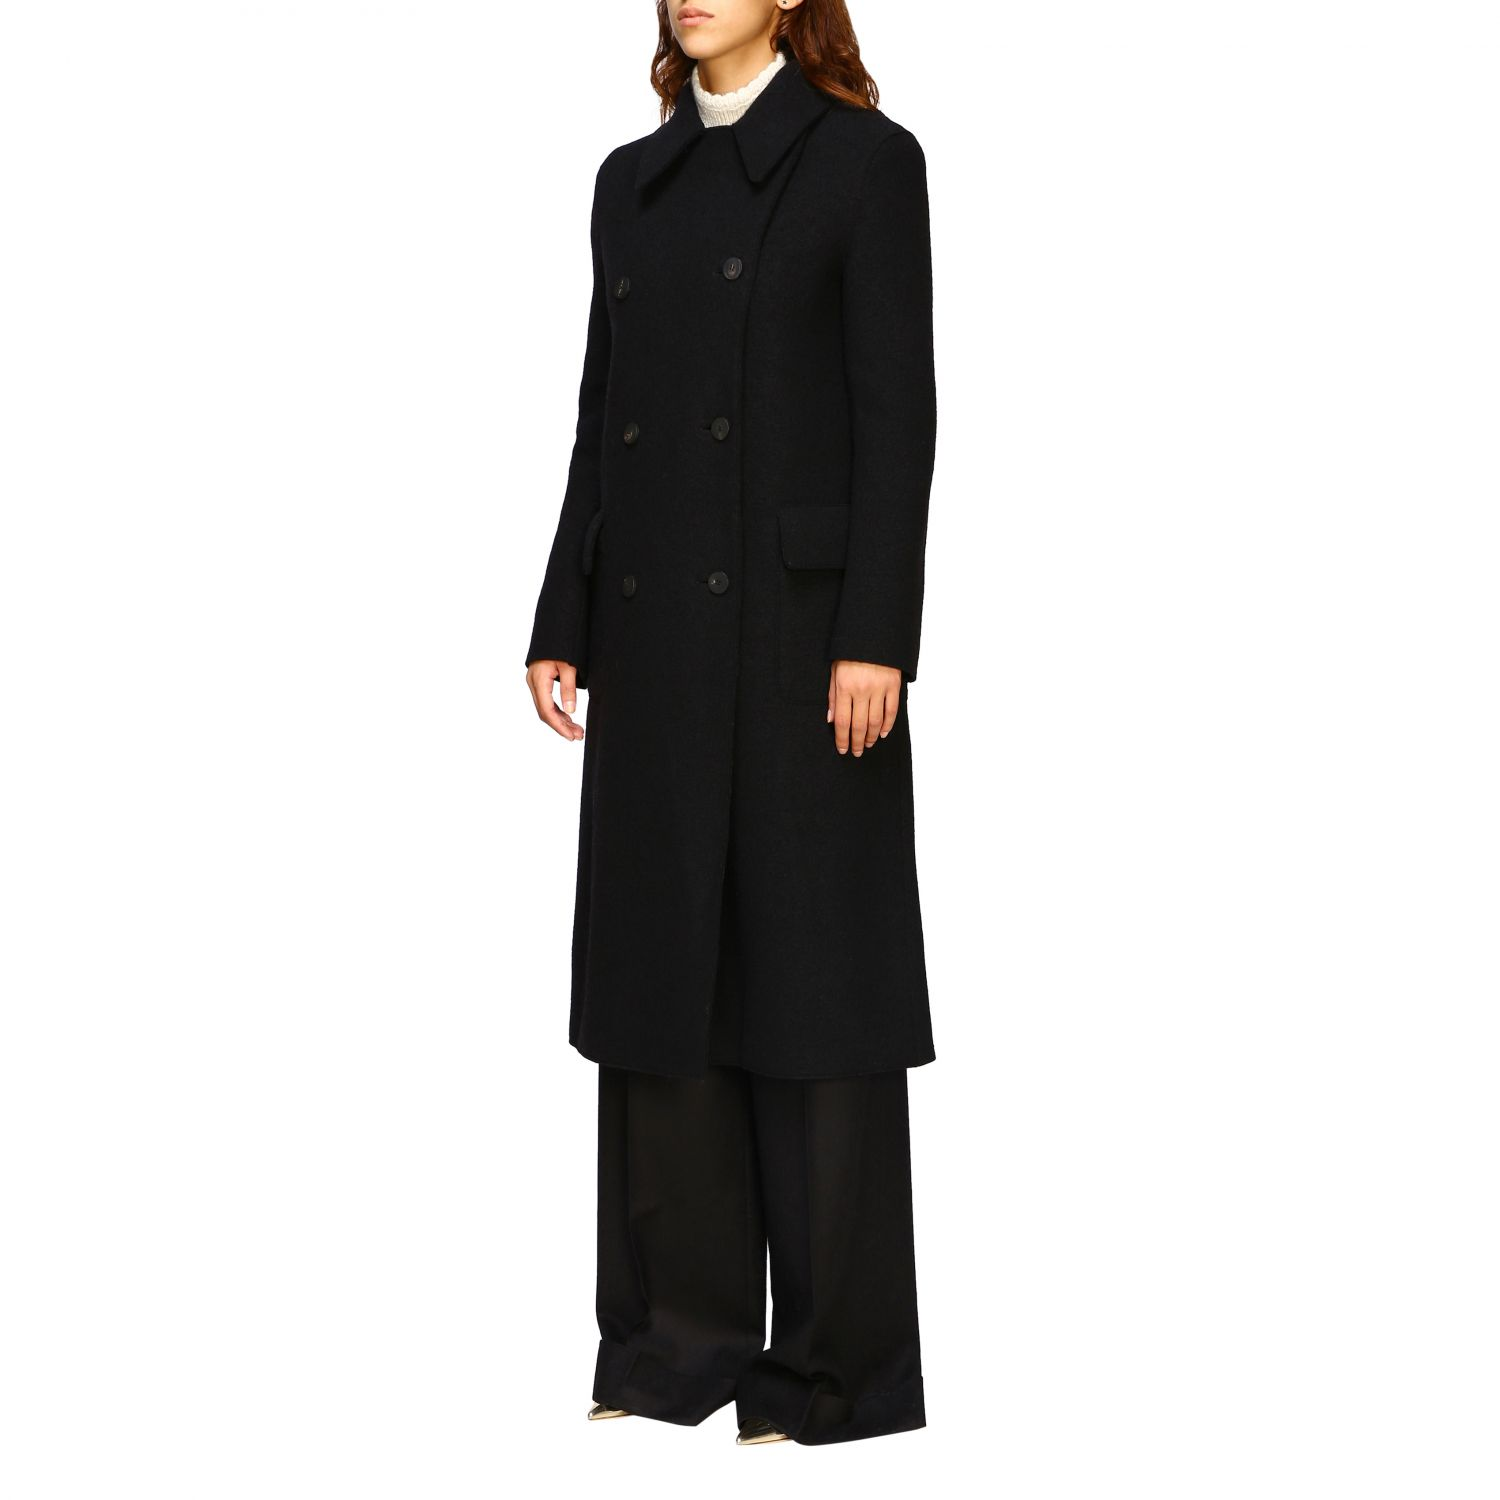 Coat Harris Wharf London: Coat women Harris Wharf London black 4